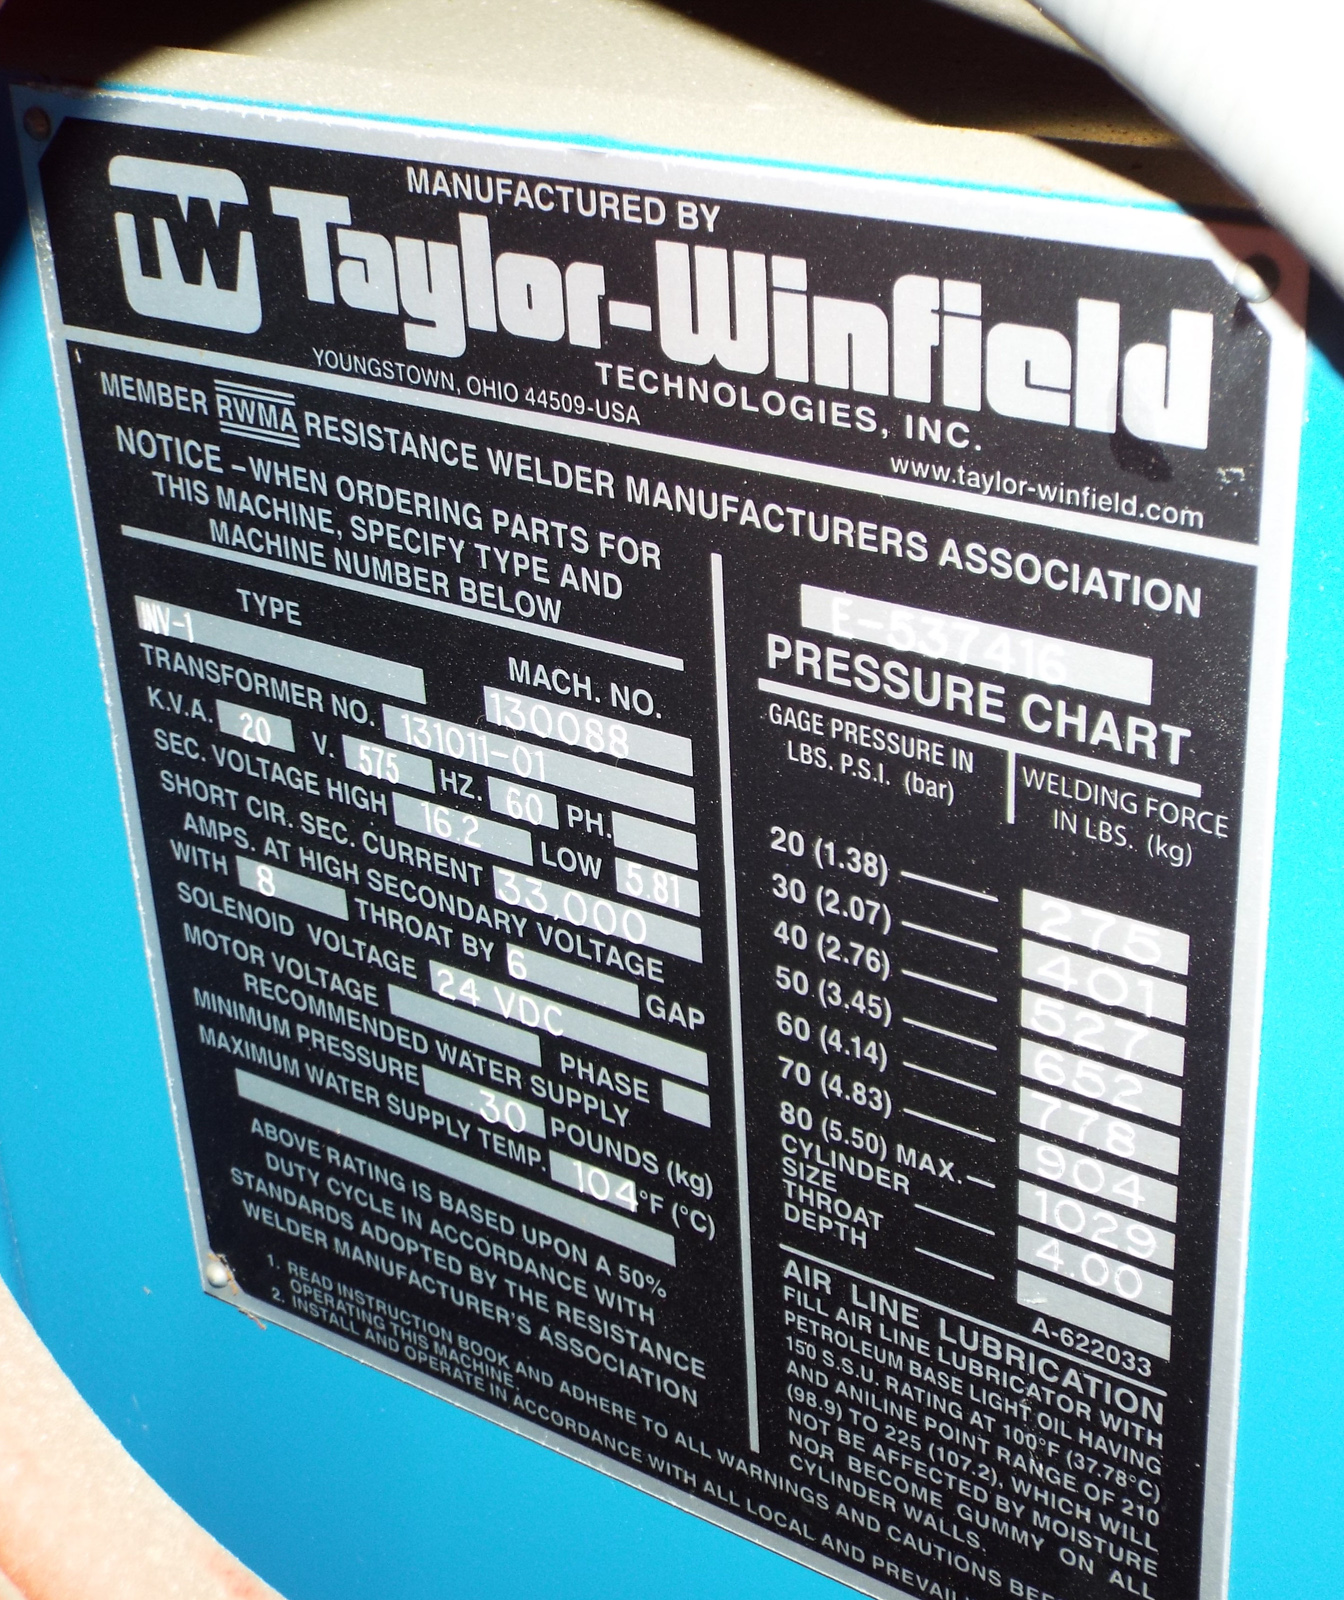 "TAYLOR WINFIELD NV-1 SPOT WELDERS WITH UNITROL SOLUTION DIGITAL CONTROL, 20 KVA, 575V, 8"" THROAT, 6"" - Image 5 of 5"